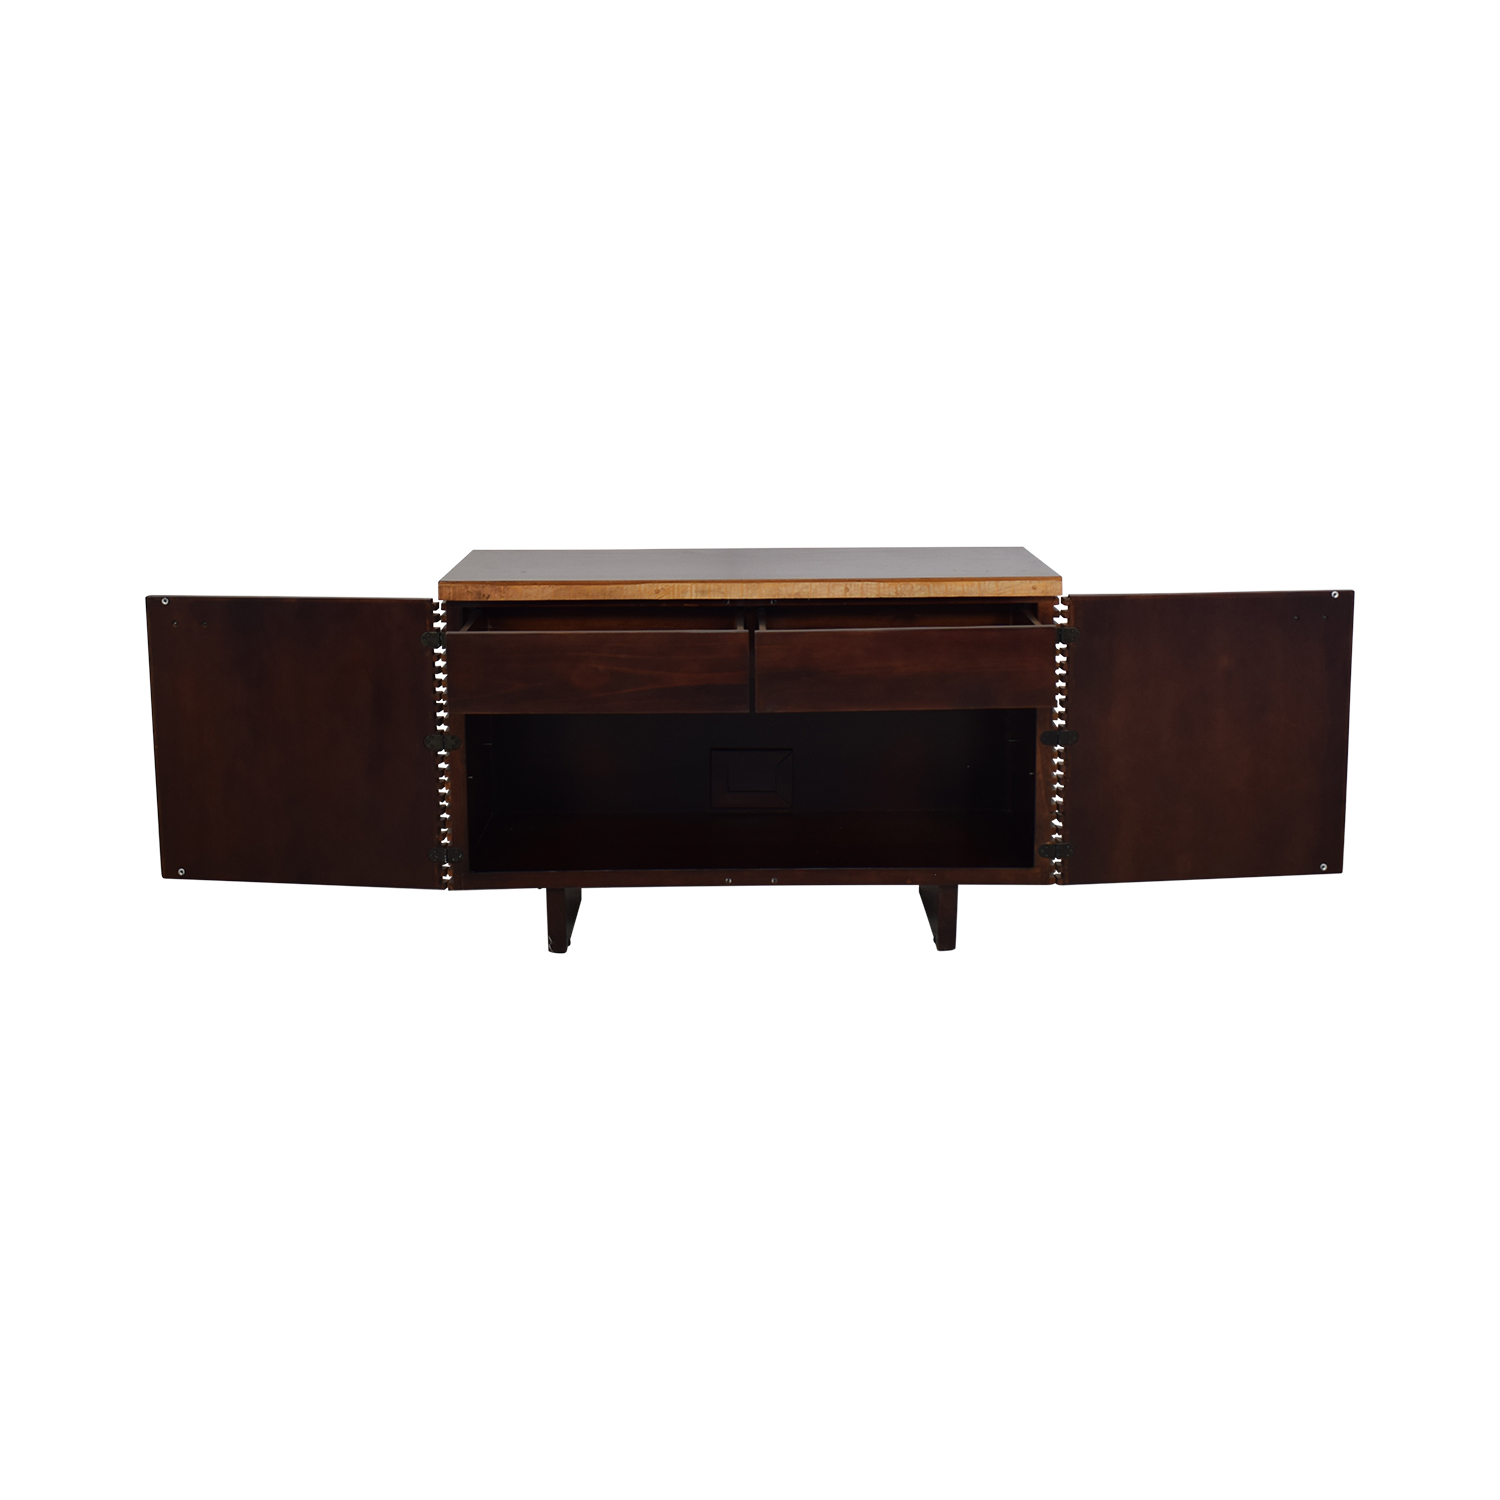 Crate & Barrel Crate & Barrel Paloma Two-Door Credenza second hand